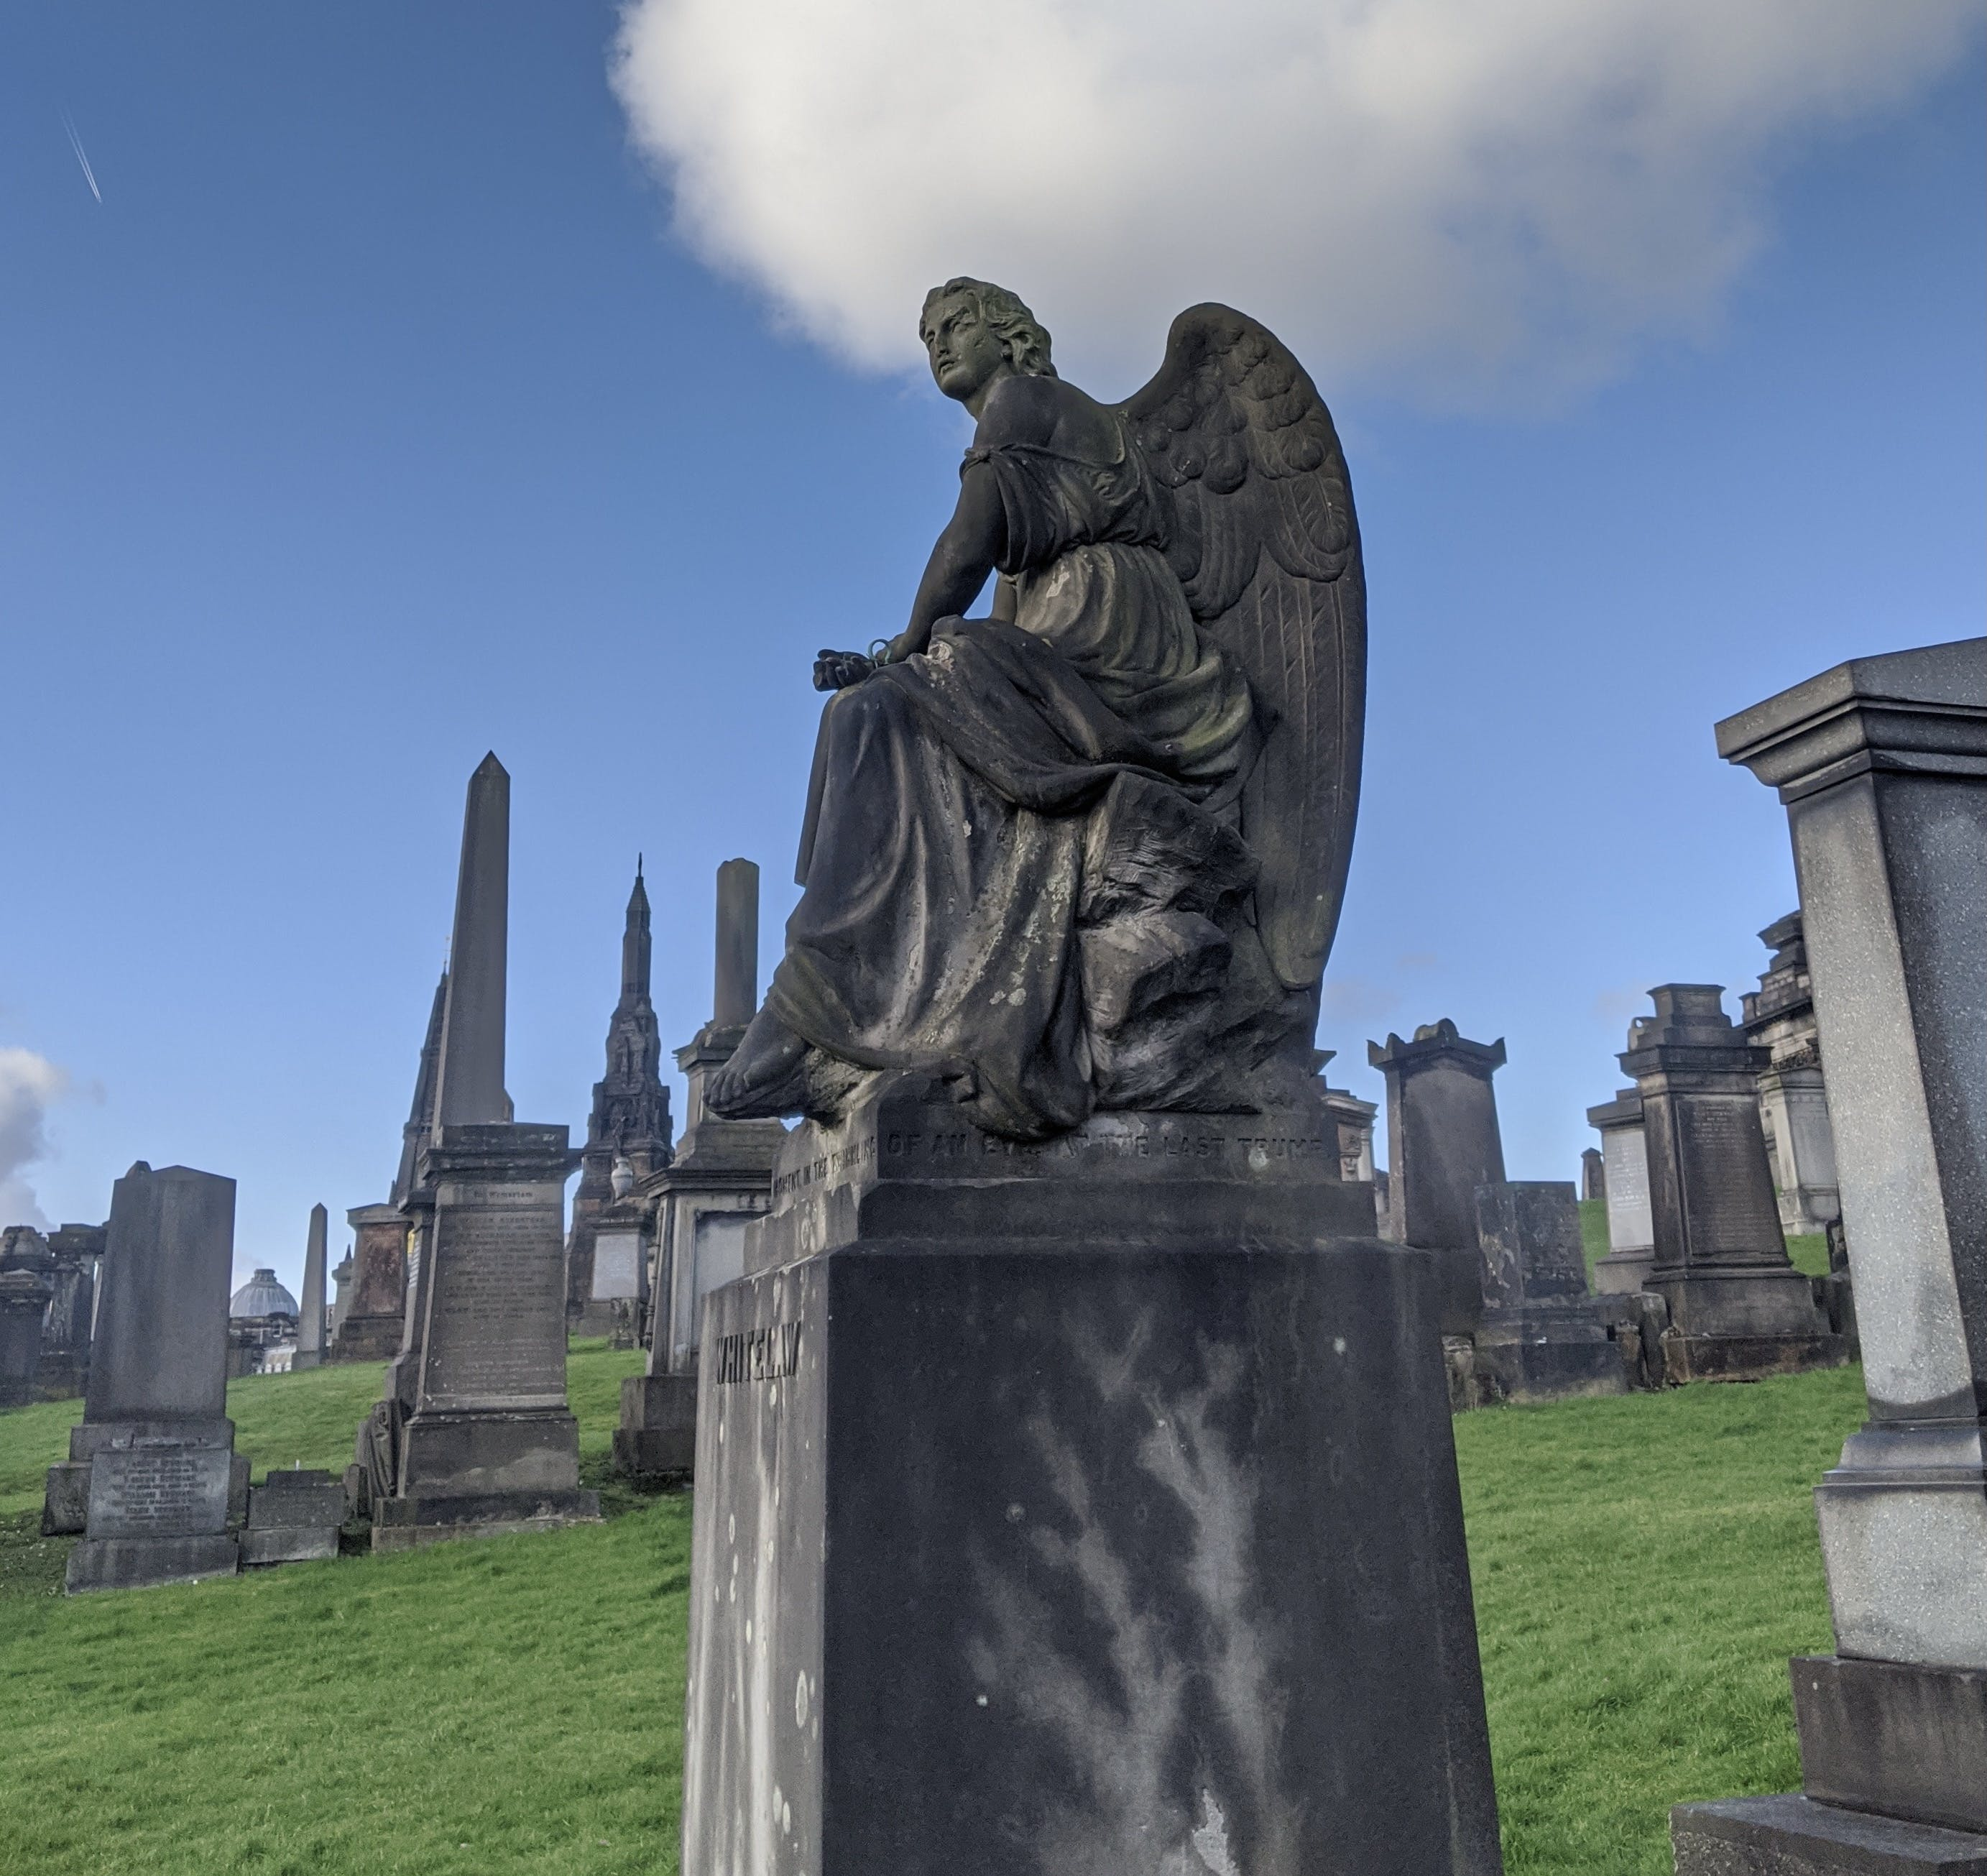 A graveyard on a sunny day, in the centre of the image is a large block grave marker with a huge angel sitting atop.